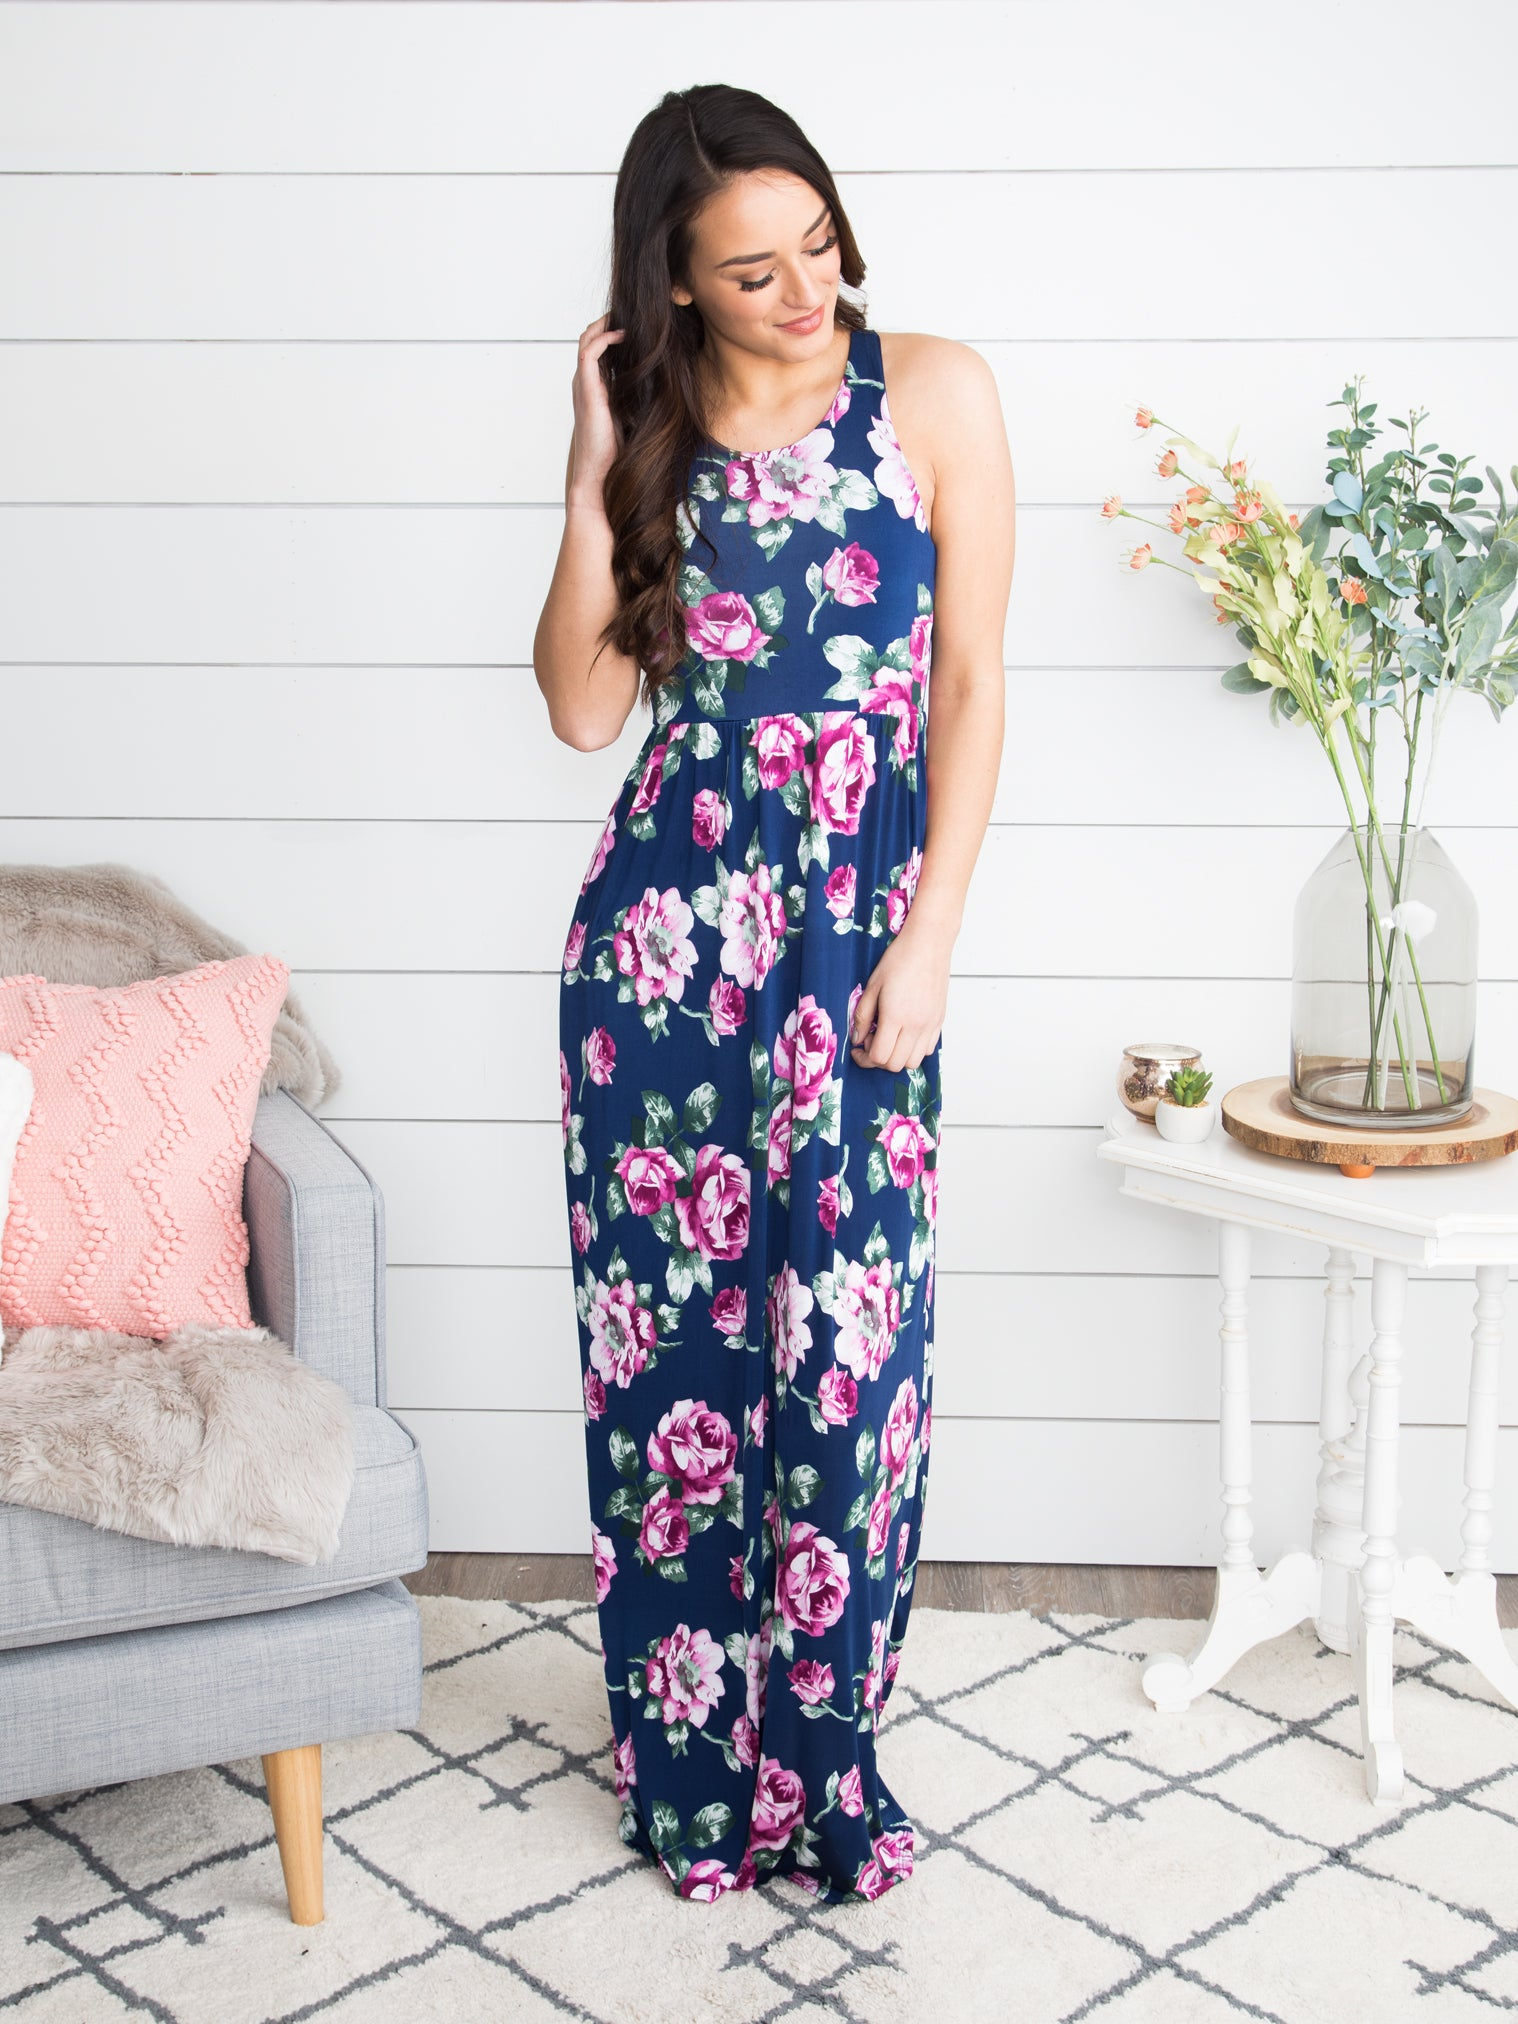 05cce7ec56 Destined For Drinks Floral Maxi - Navy - Eleven Oaks Boutique